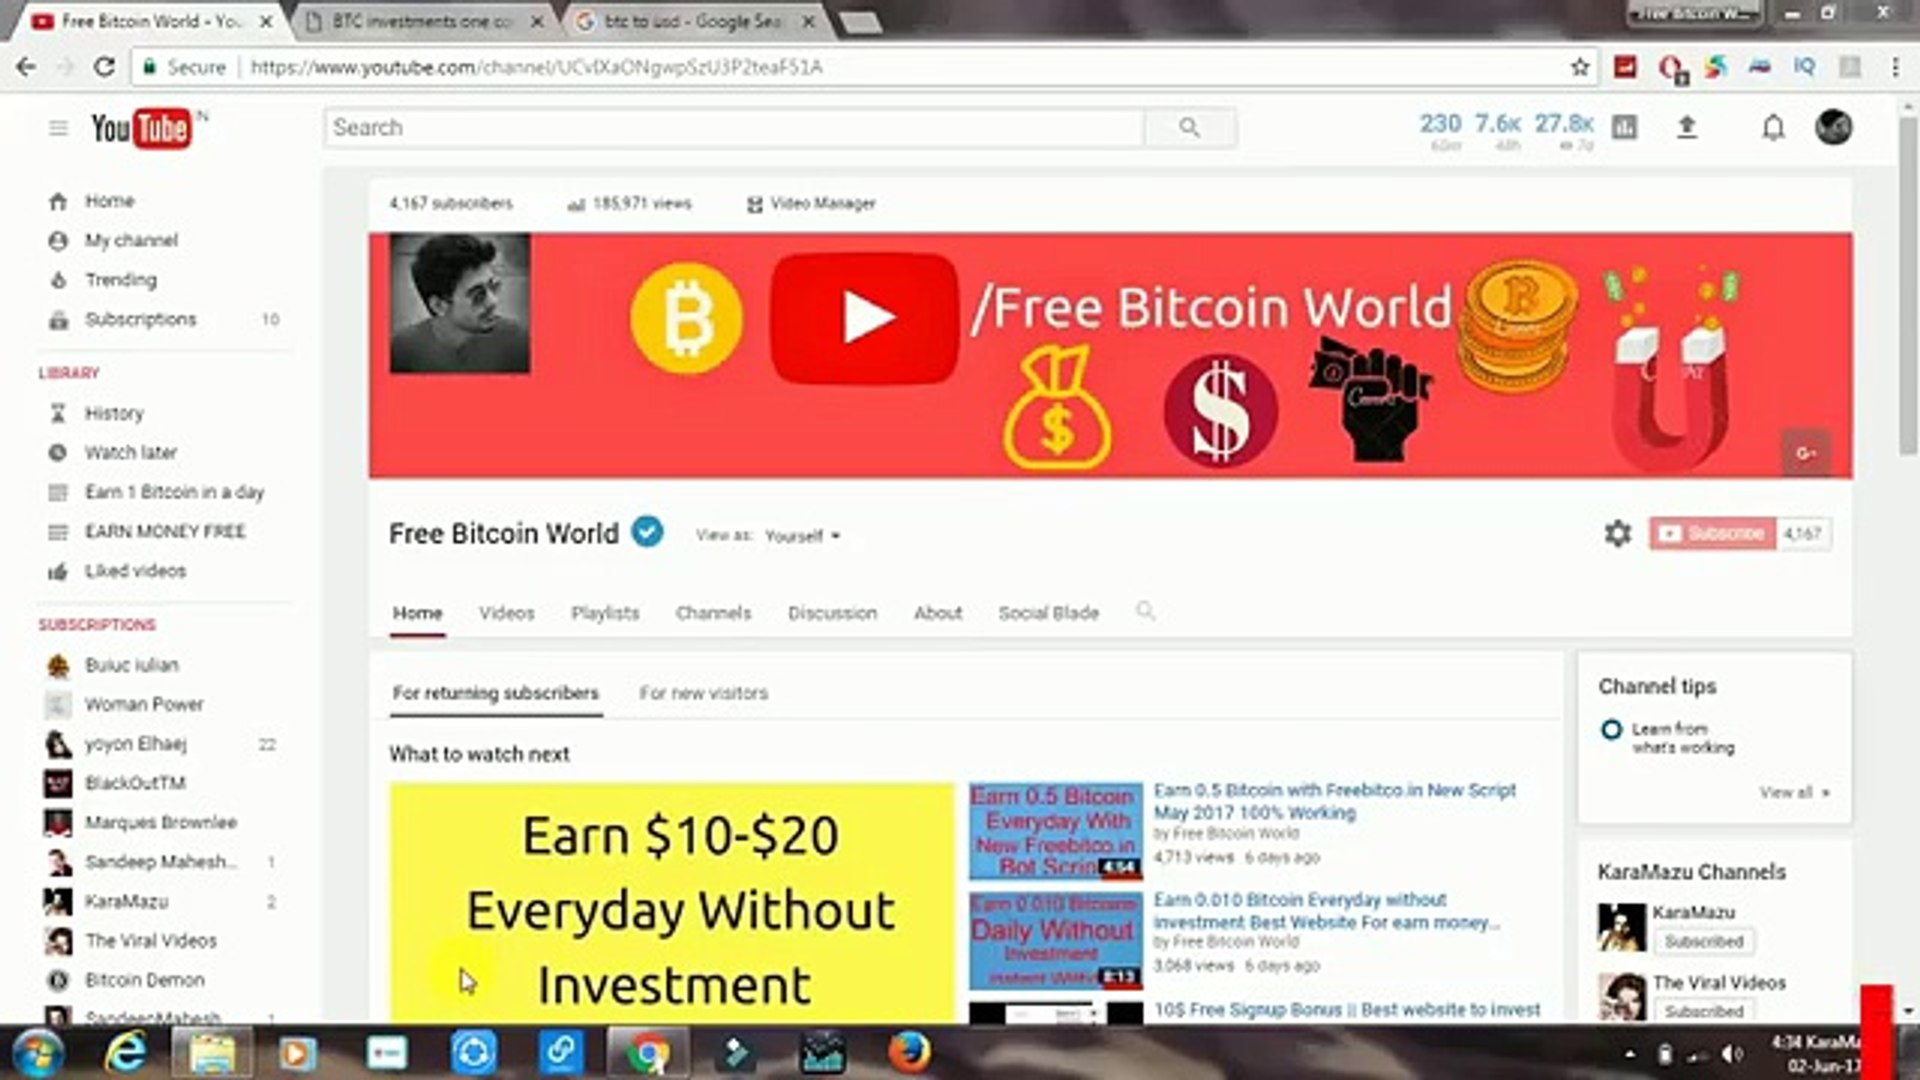 How To Earn Money With Youtube Video Dailymotion | Making Money ... | 1080x1920